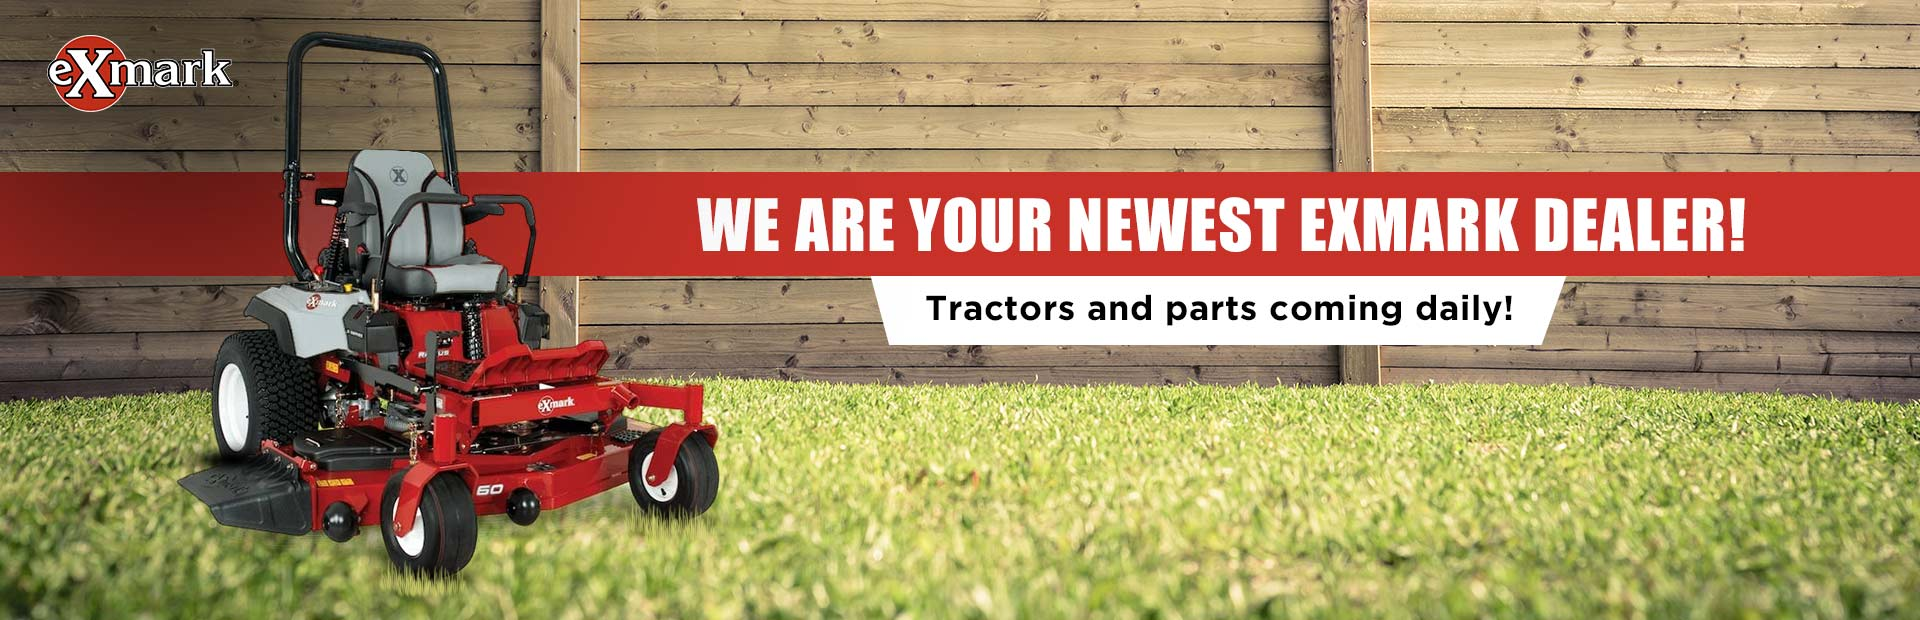 We now sell eXmark! Tractors and parts coming daily! Click here to view the inventory.